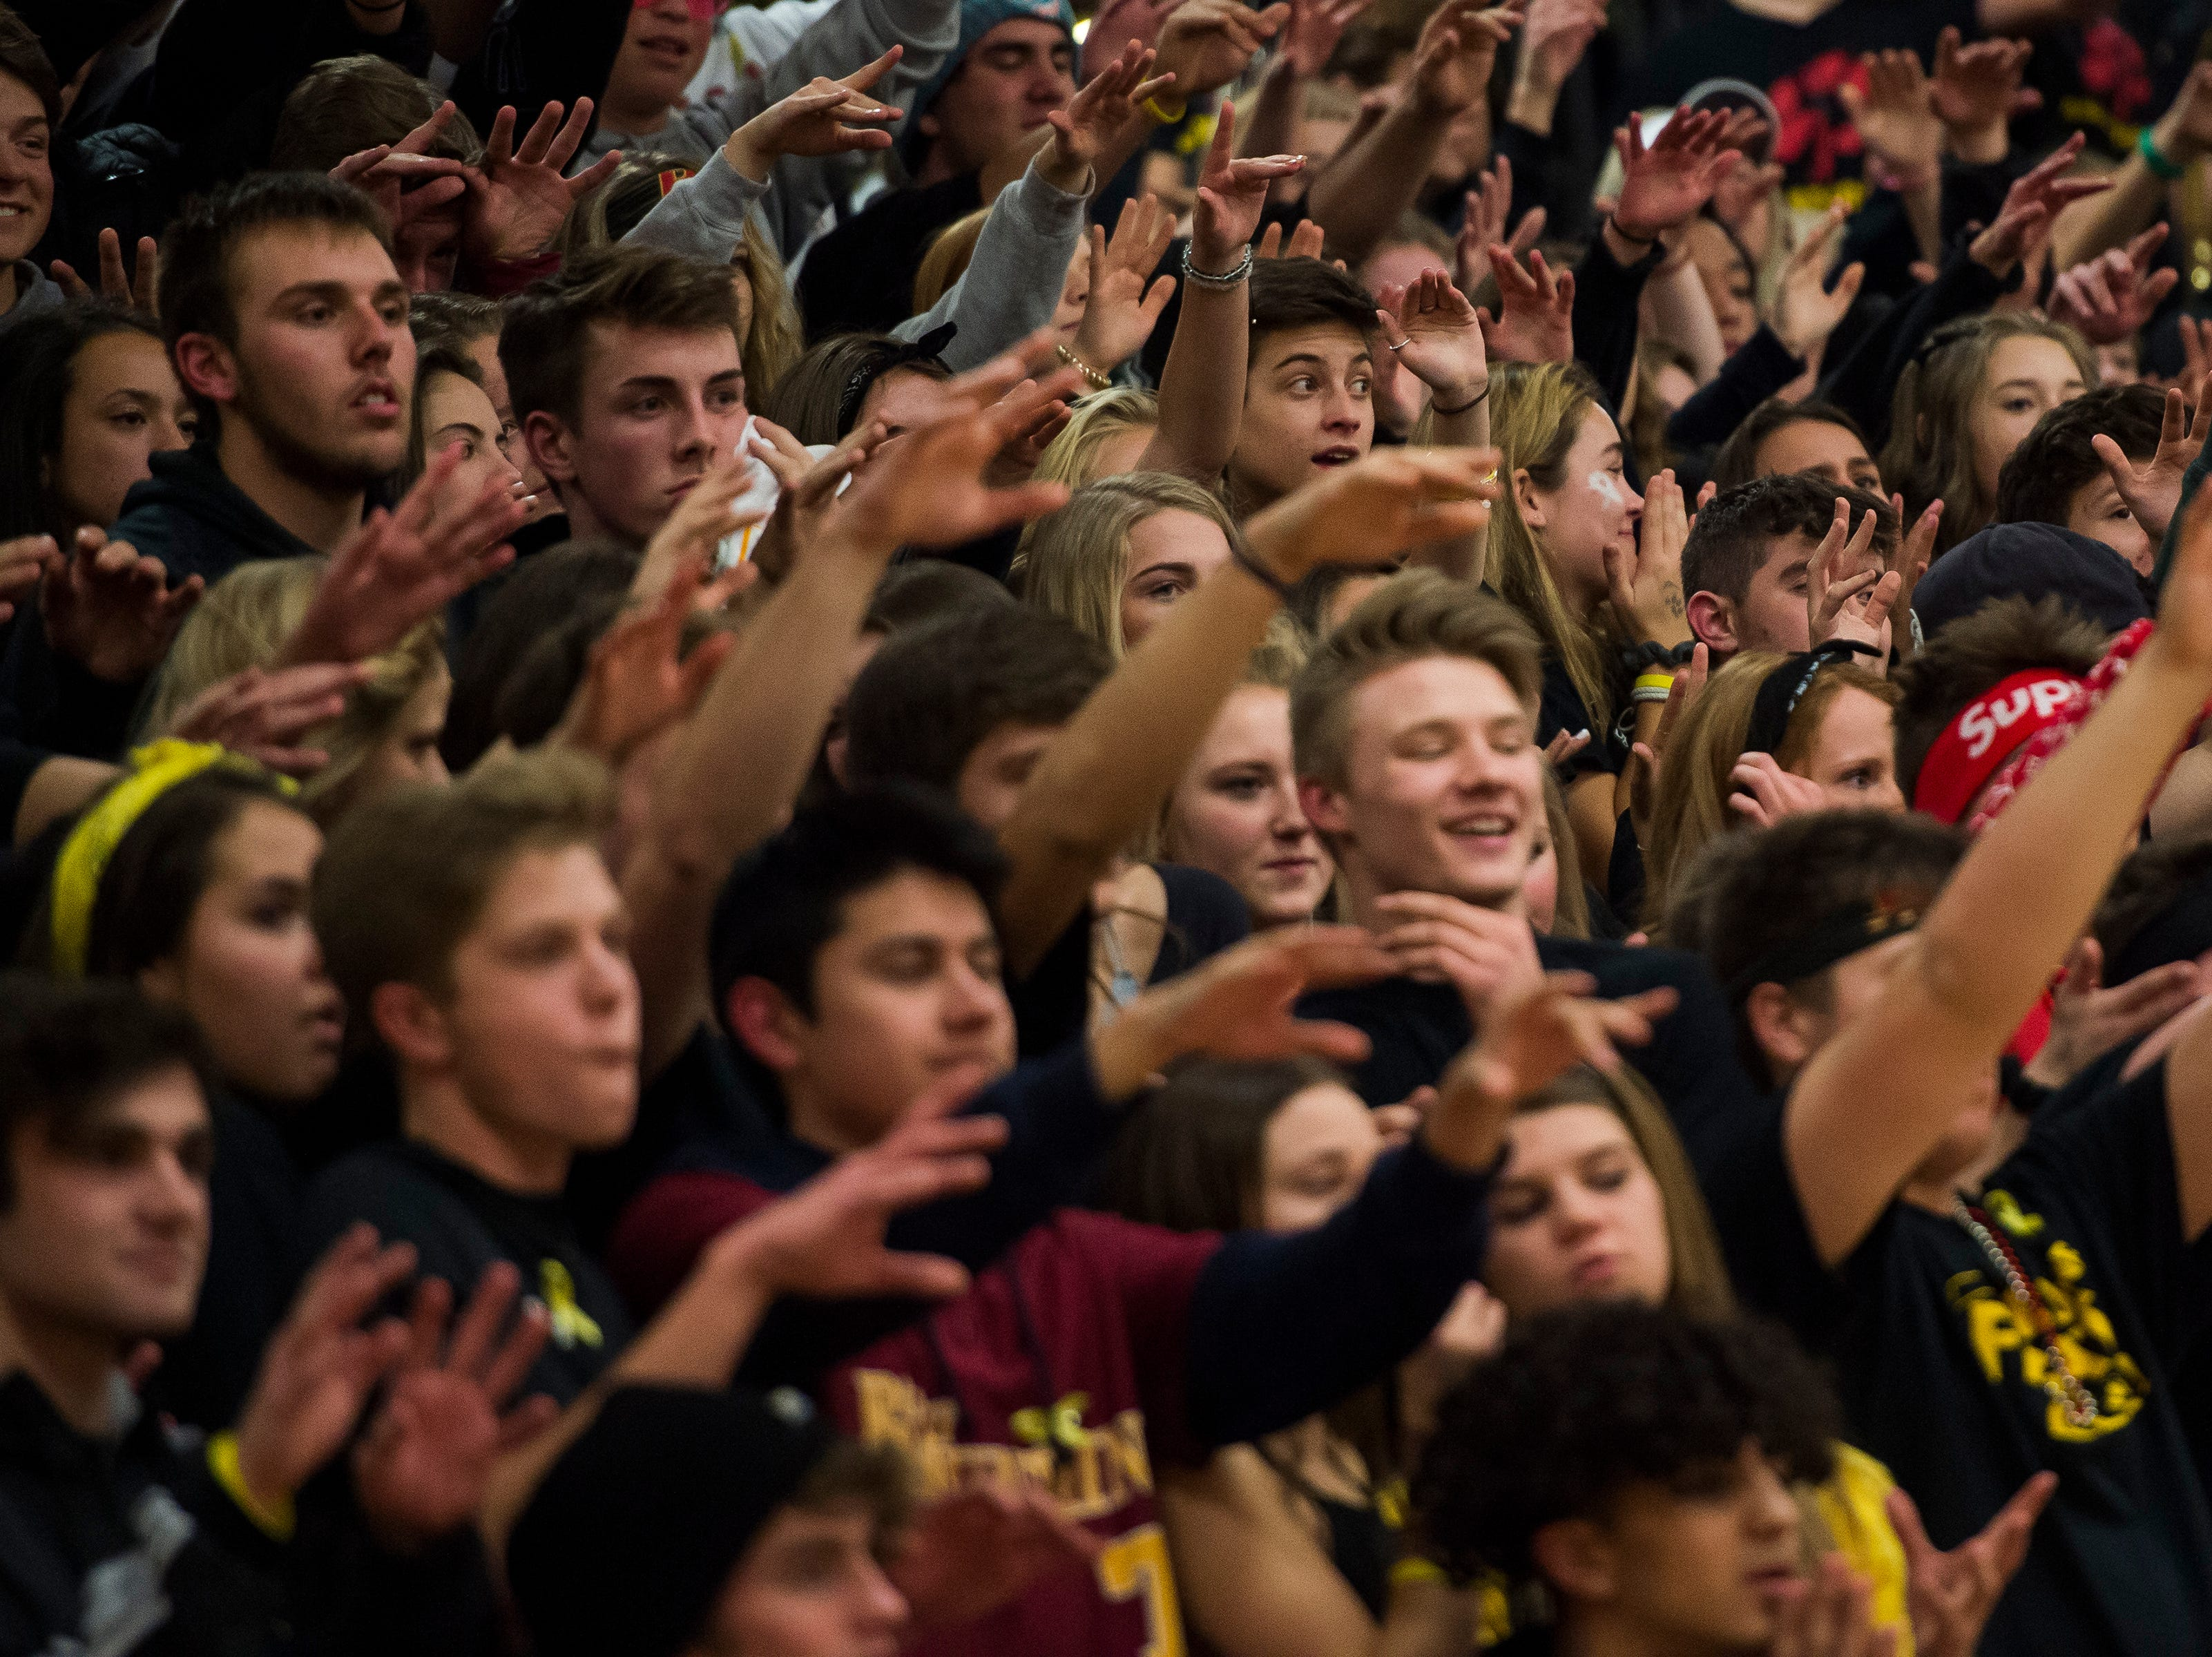 The Rocky Mountain High School student section gives good vibes while a player attempts a free throw during a game against Fort Collins High School on Friday, Jan. 18, 2019, at Rocky Mountain High School in Fort Collins, Colo.